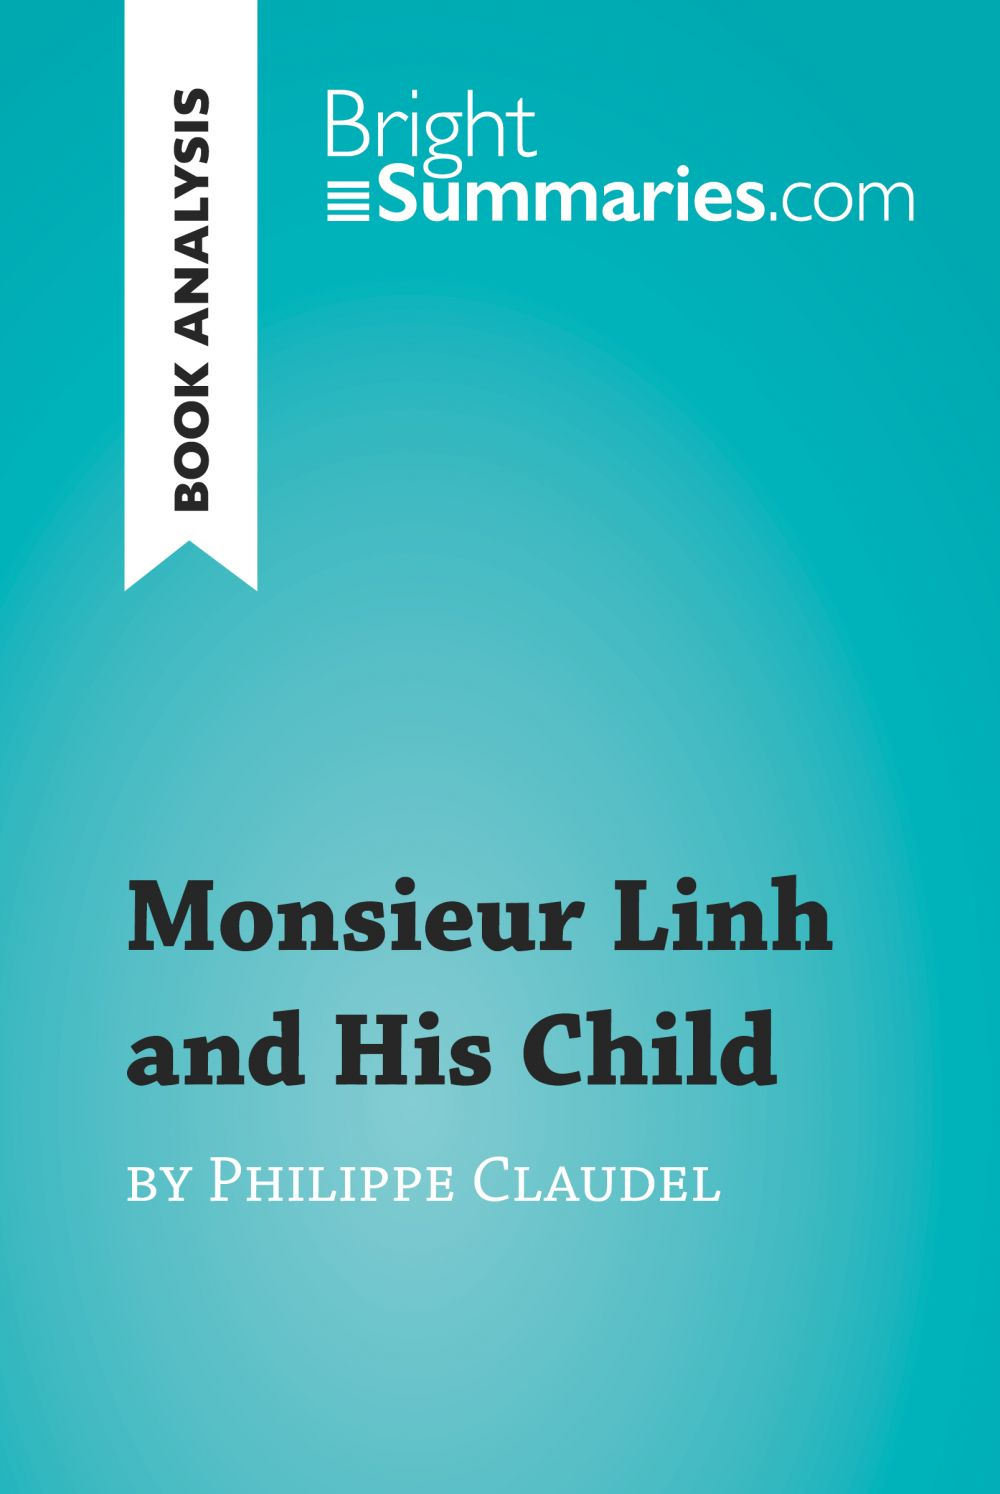 Monsieur Linh and His Child by Philippe Claudel (Book Analysis)